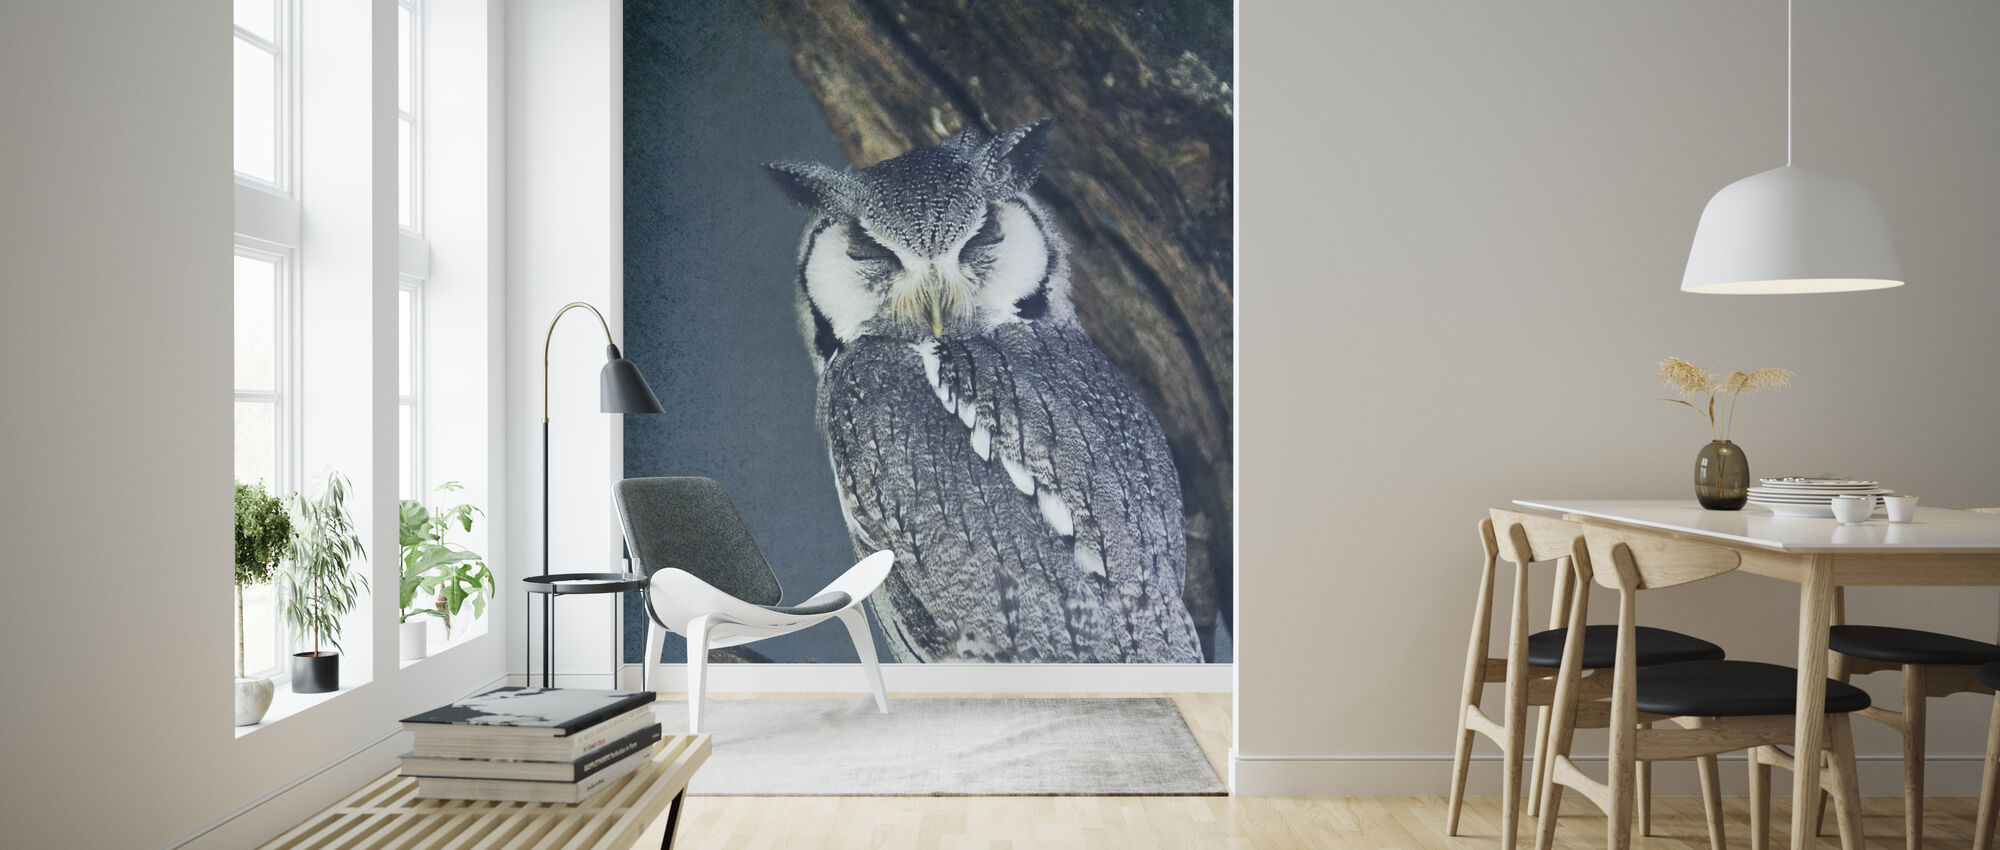 Sleeping Owl - Wallpaper - Living Room